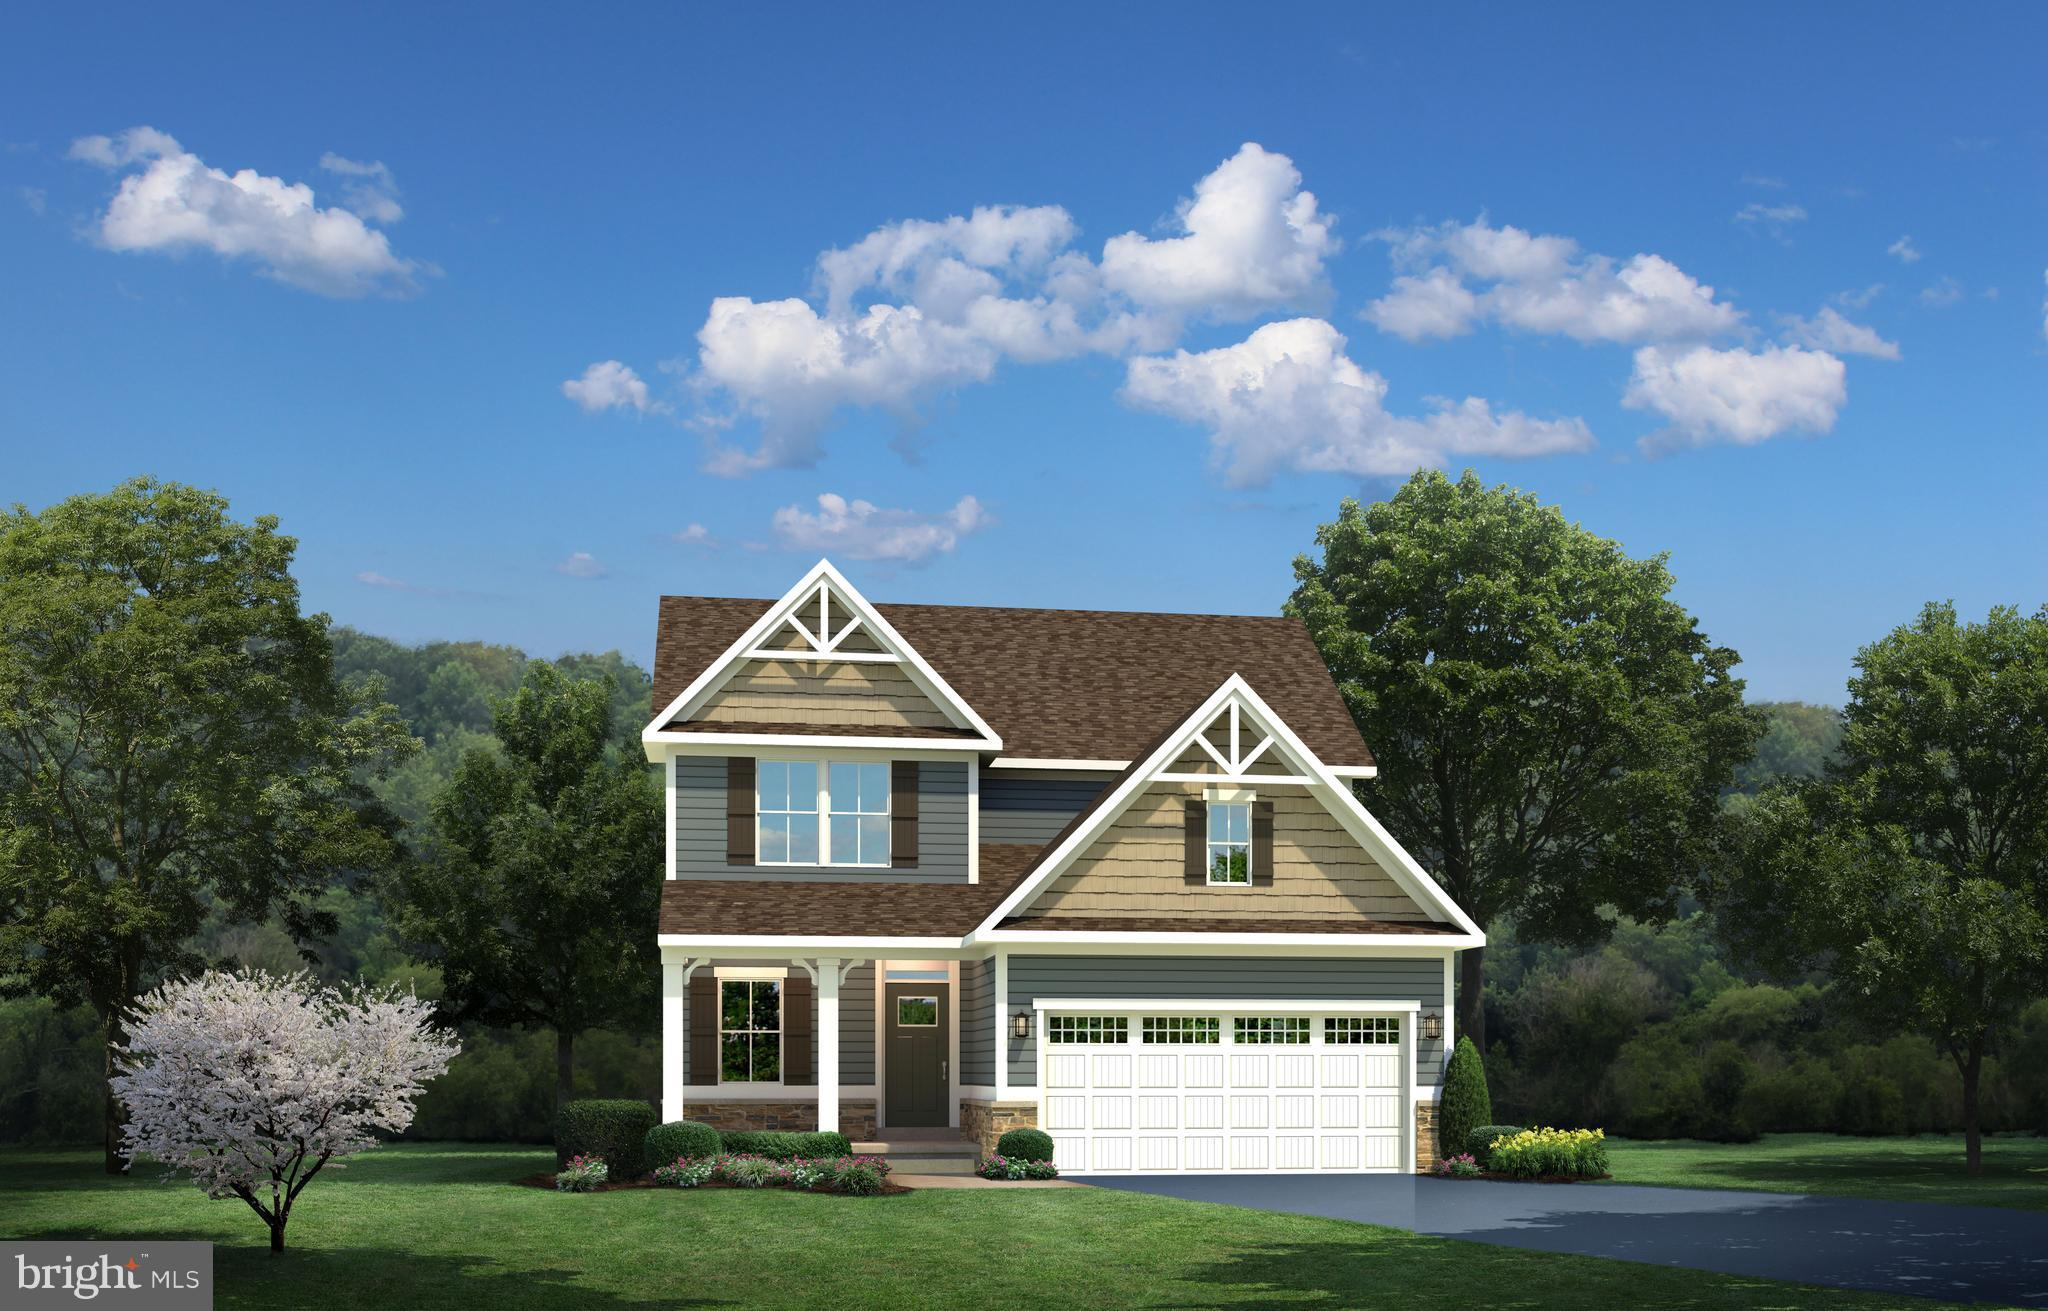 .The COLUMBIA AT TWO RIVERS ALL AGES COMMUNITY  is a roomy floor  plan and custom flex areas, The Co